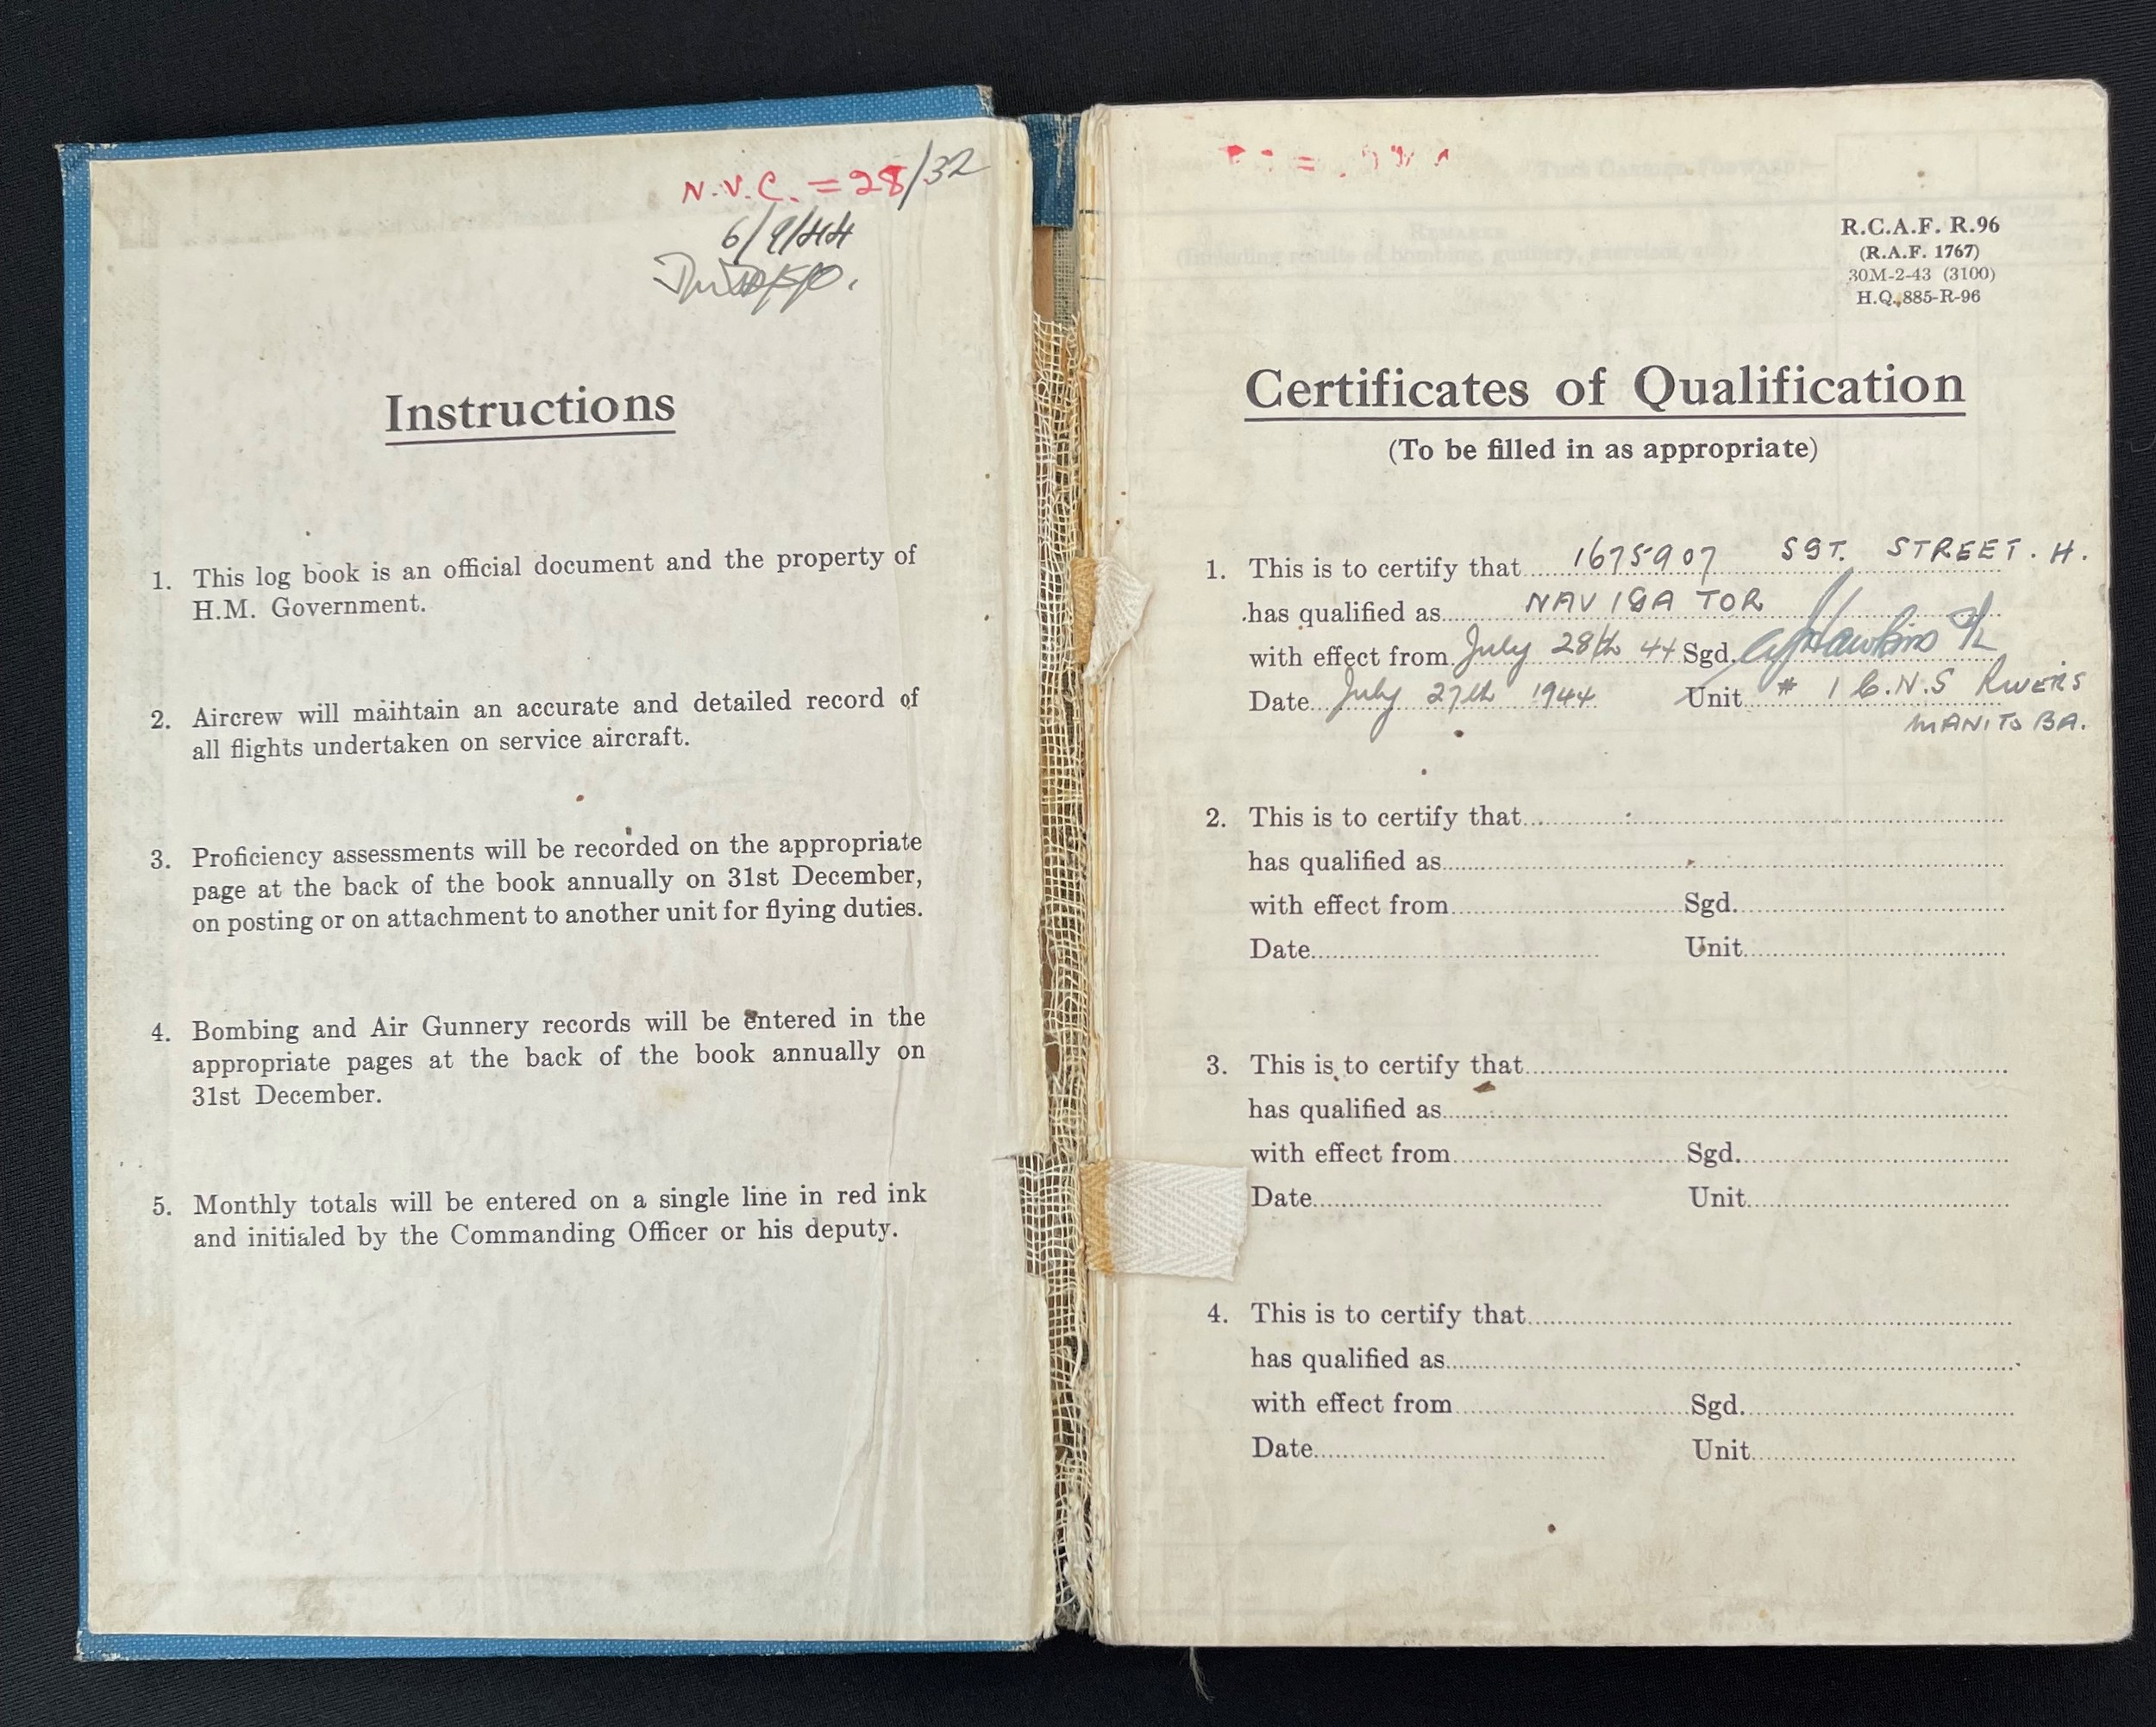 WW2 British RAF Navigators Log book, Service & Release Book and Medals to 1675907 Sgt Horace Street, - Image 2 of 11